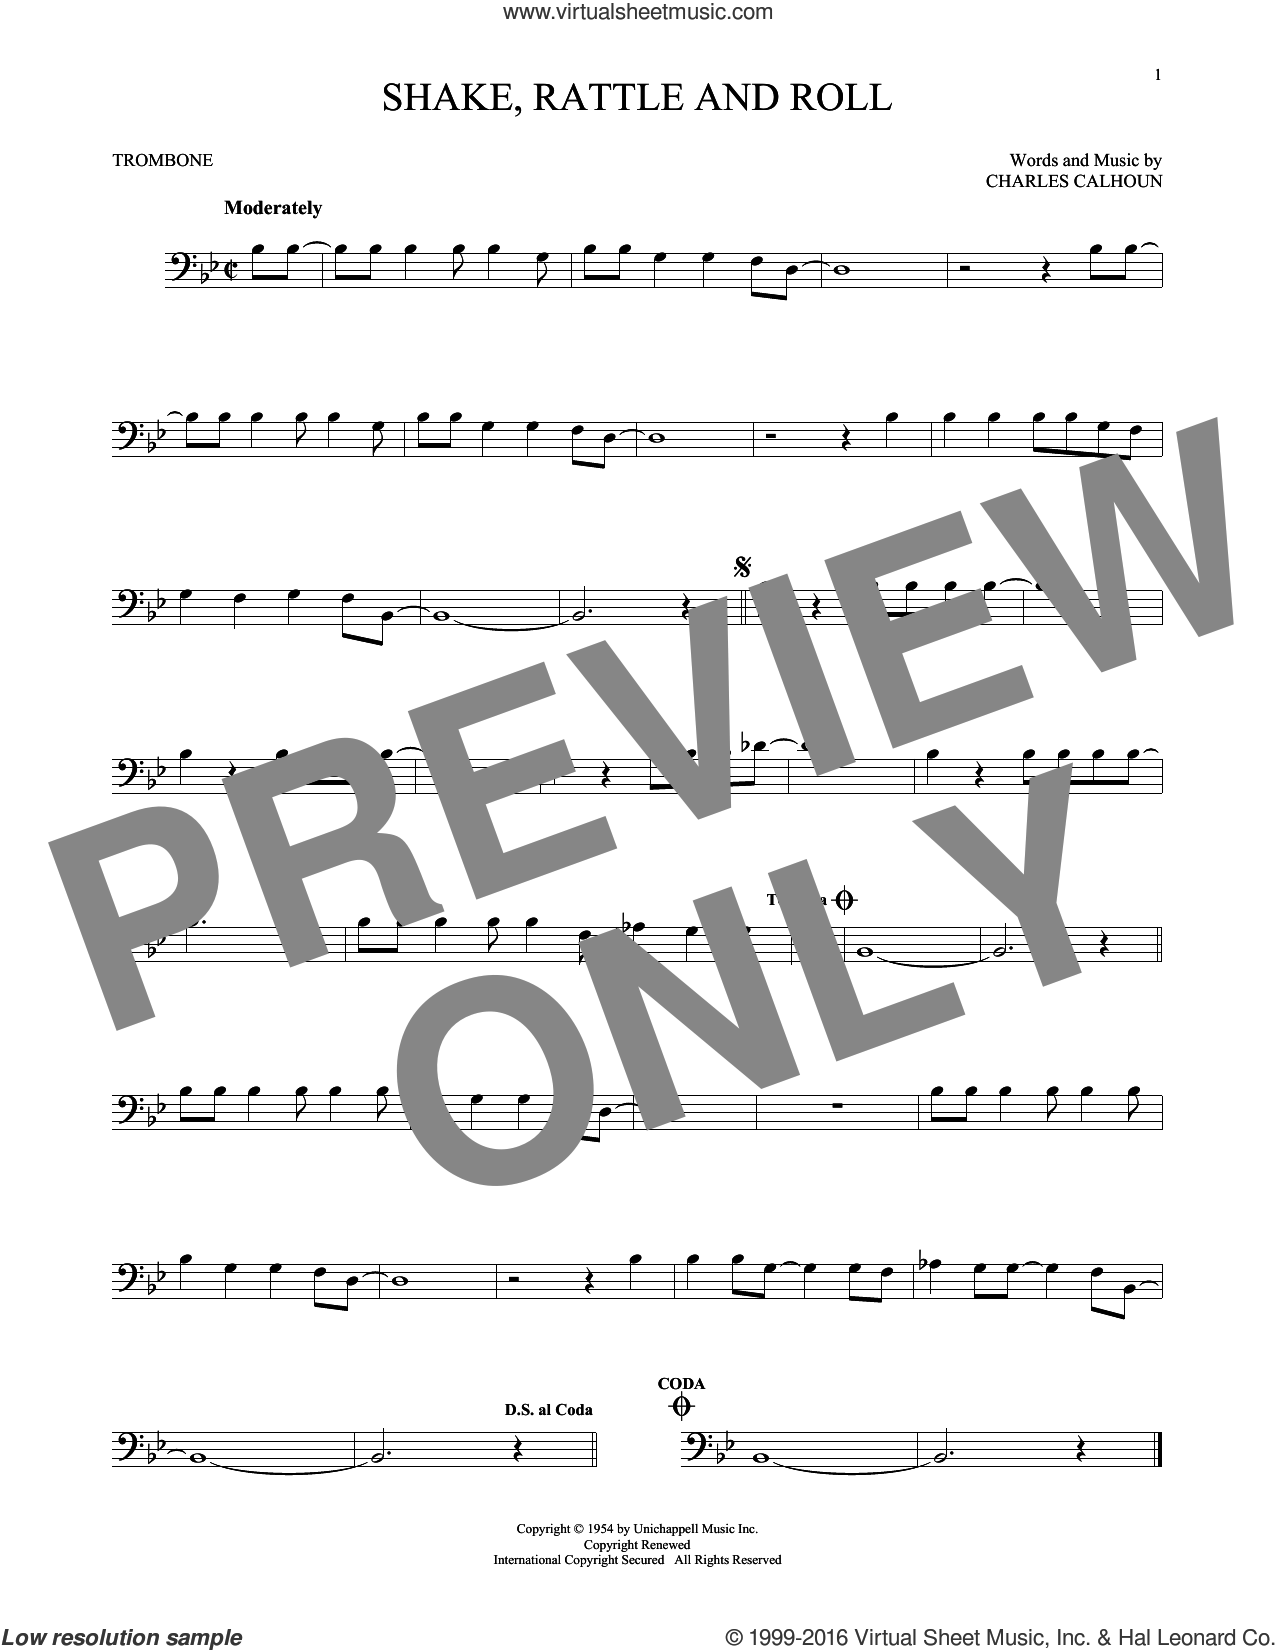 Shake, Rattle And Roll sheet music for trombone solo by Bill Haley & His Comets, Arthur Conley and Charles Calhoun, intermediate skill level